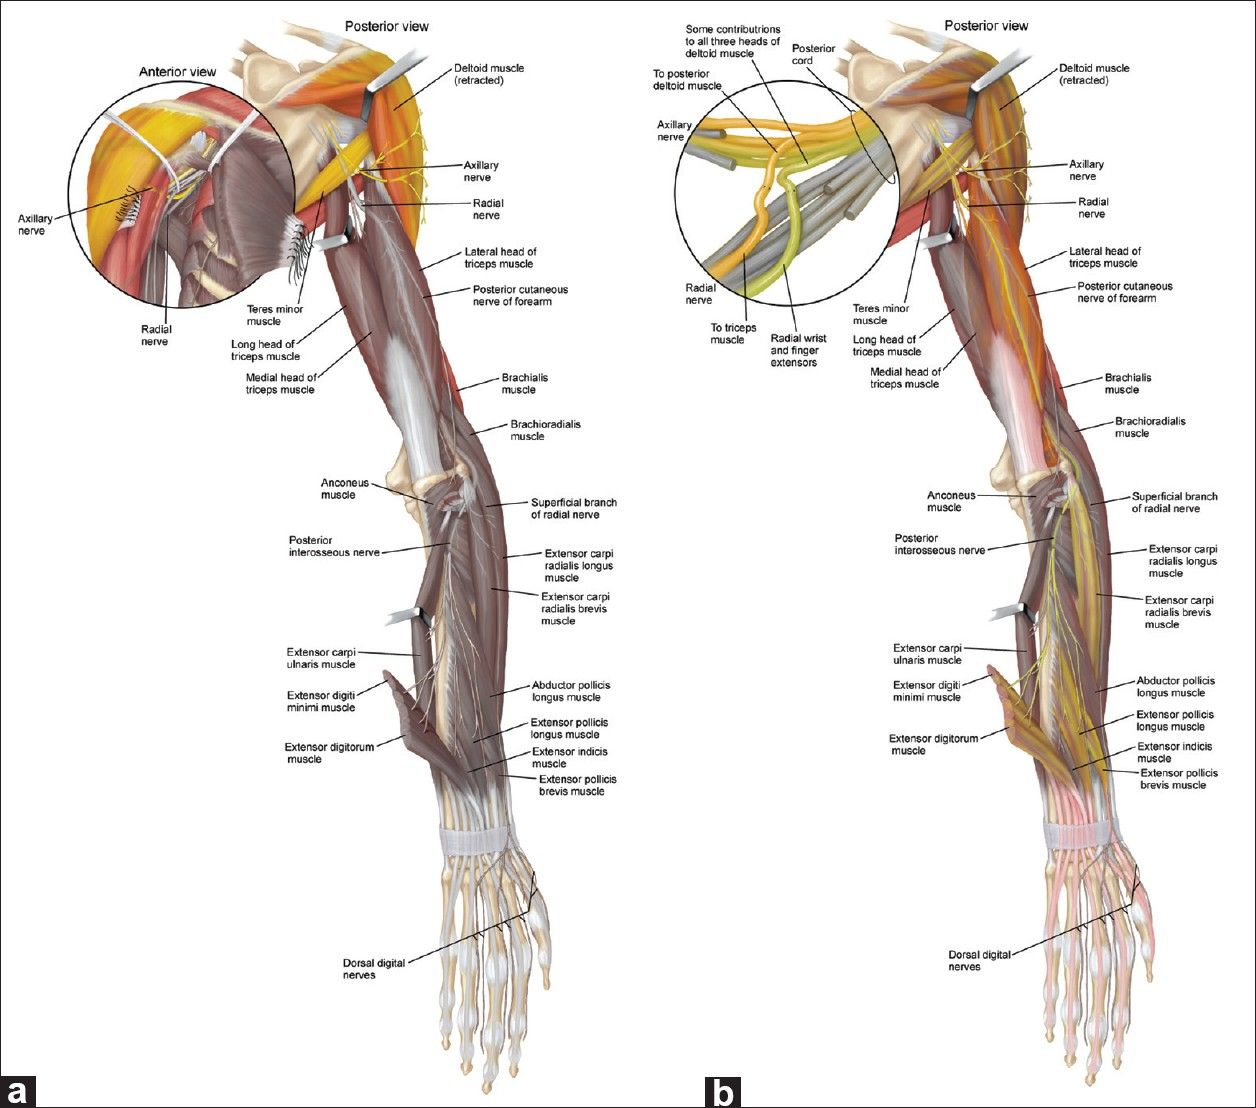 Radial Nerve Anatomy Is A Nerve That Runs Down The Underside Of The